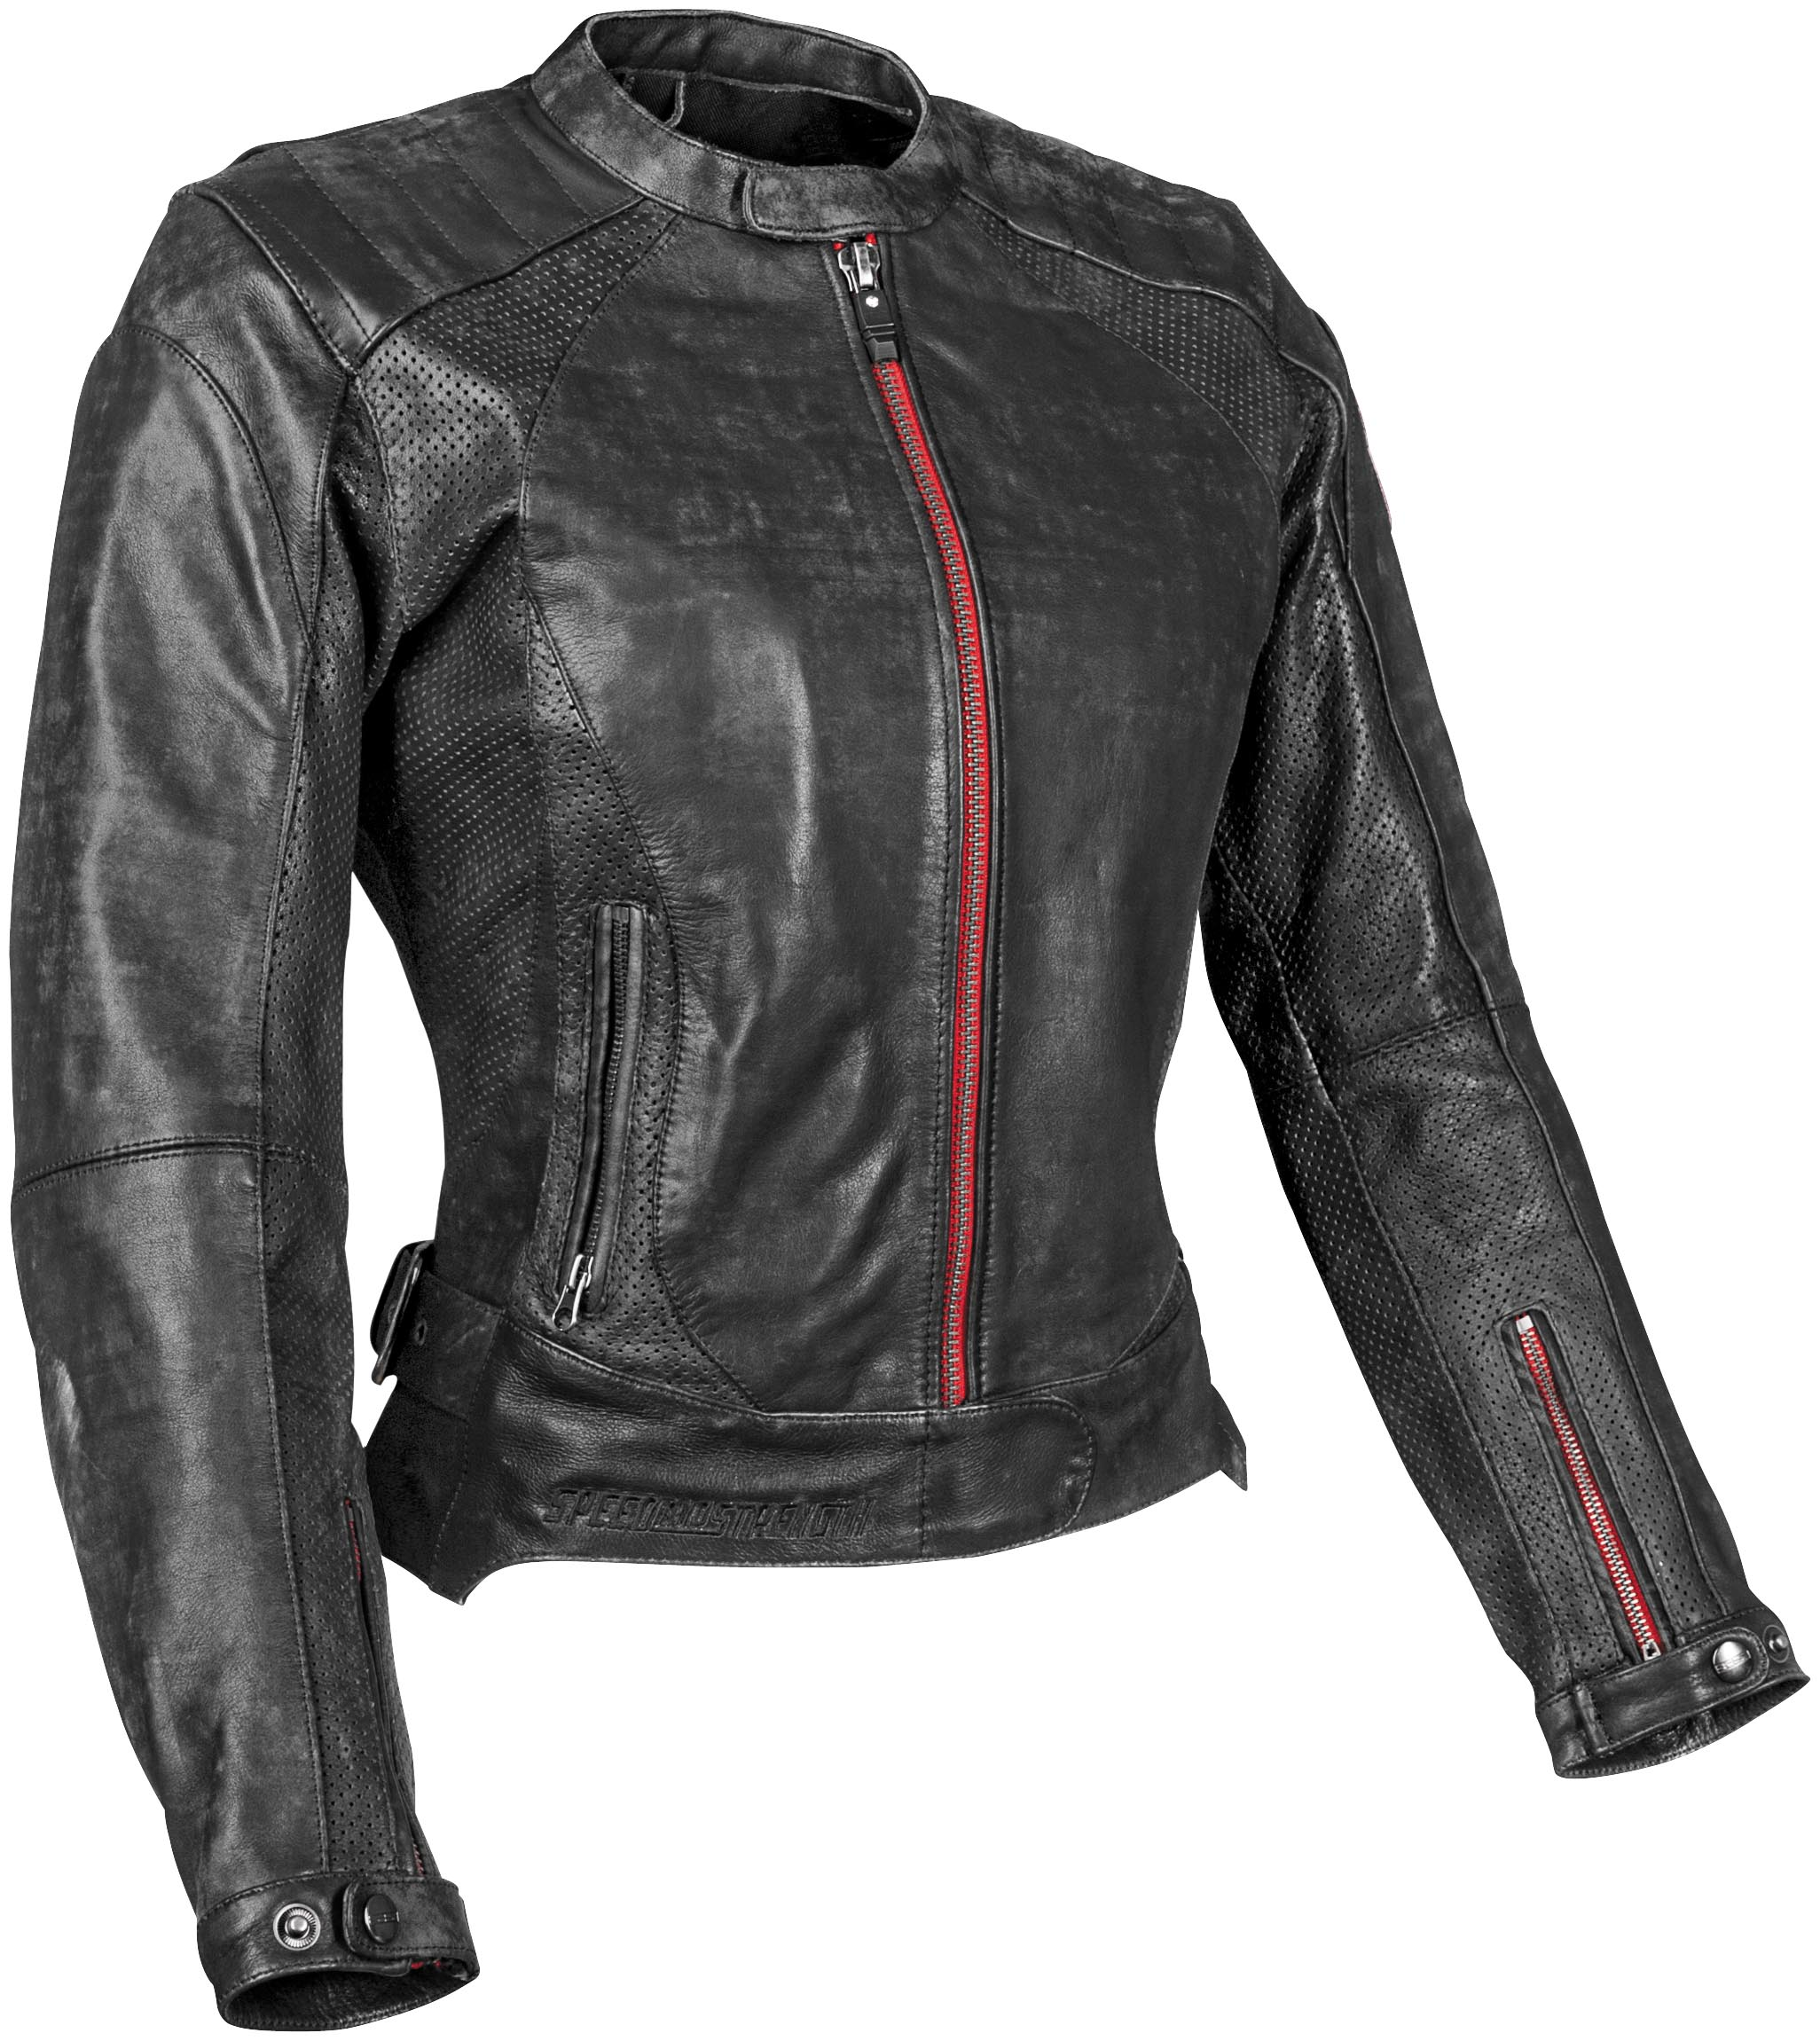 Womens motorcycle riding jackets